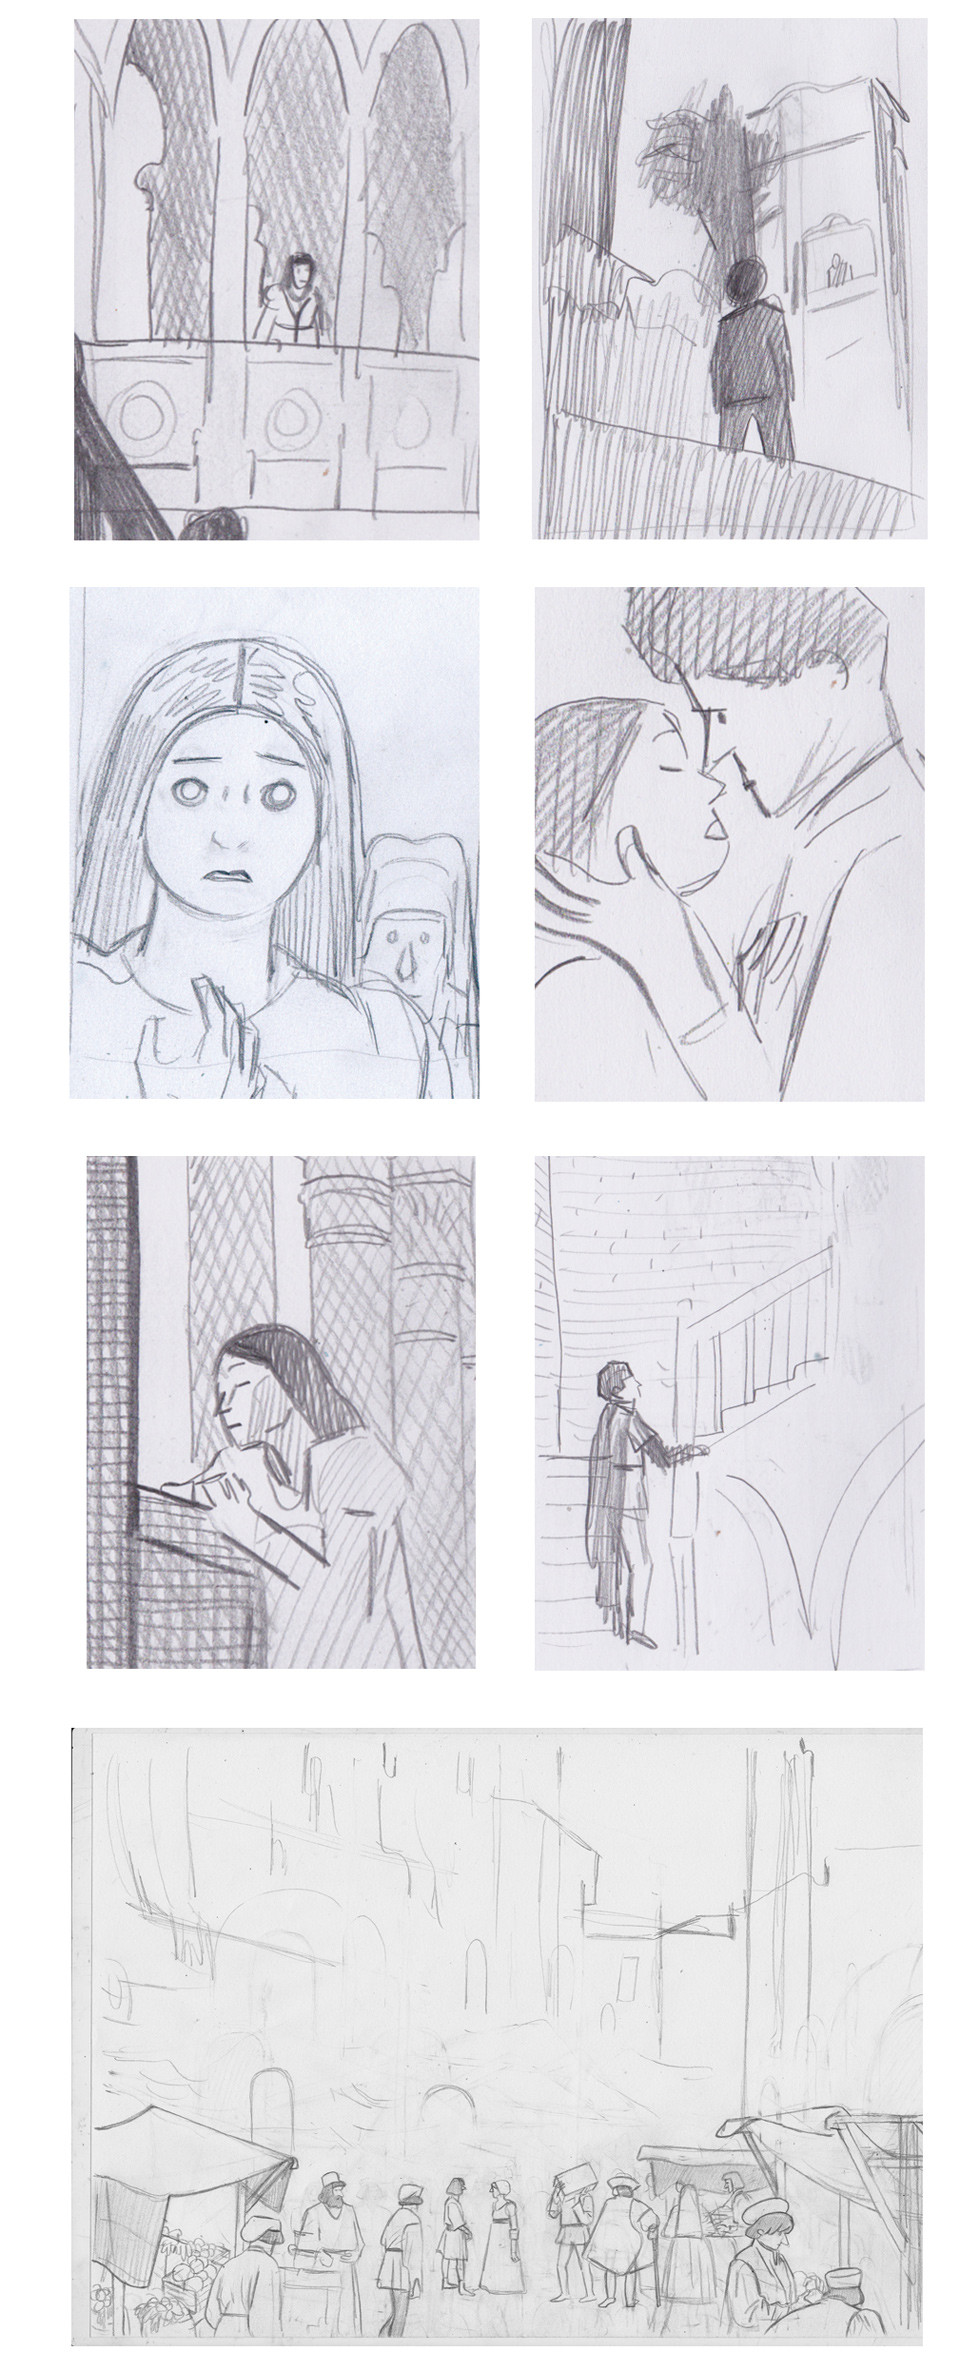 Romeo_and_Juliet_graphic_novel_william_shakespeare_early_rough_work.jpg